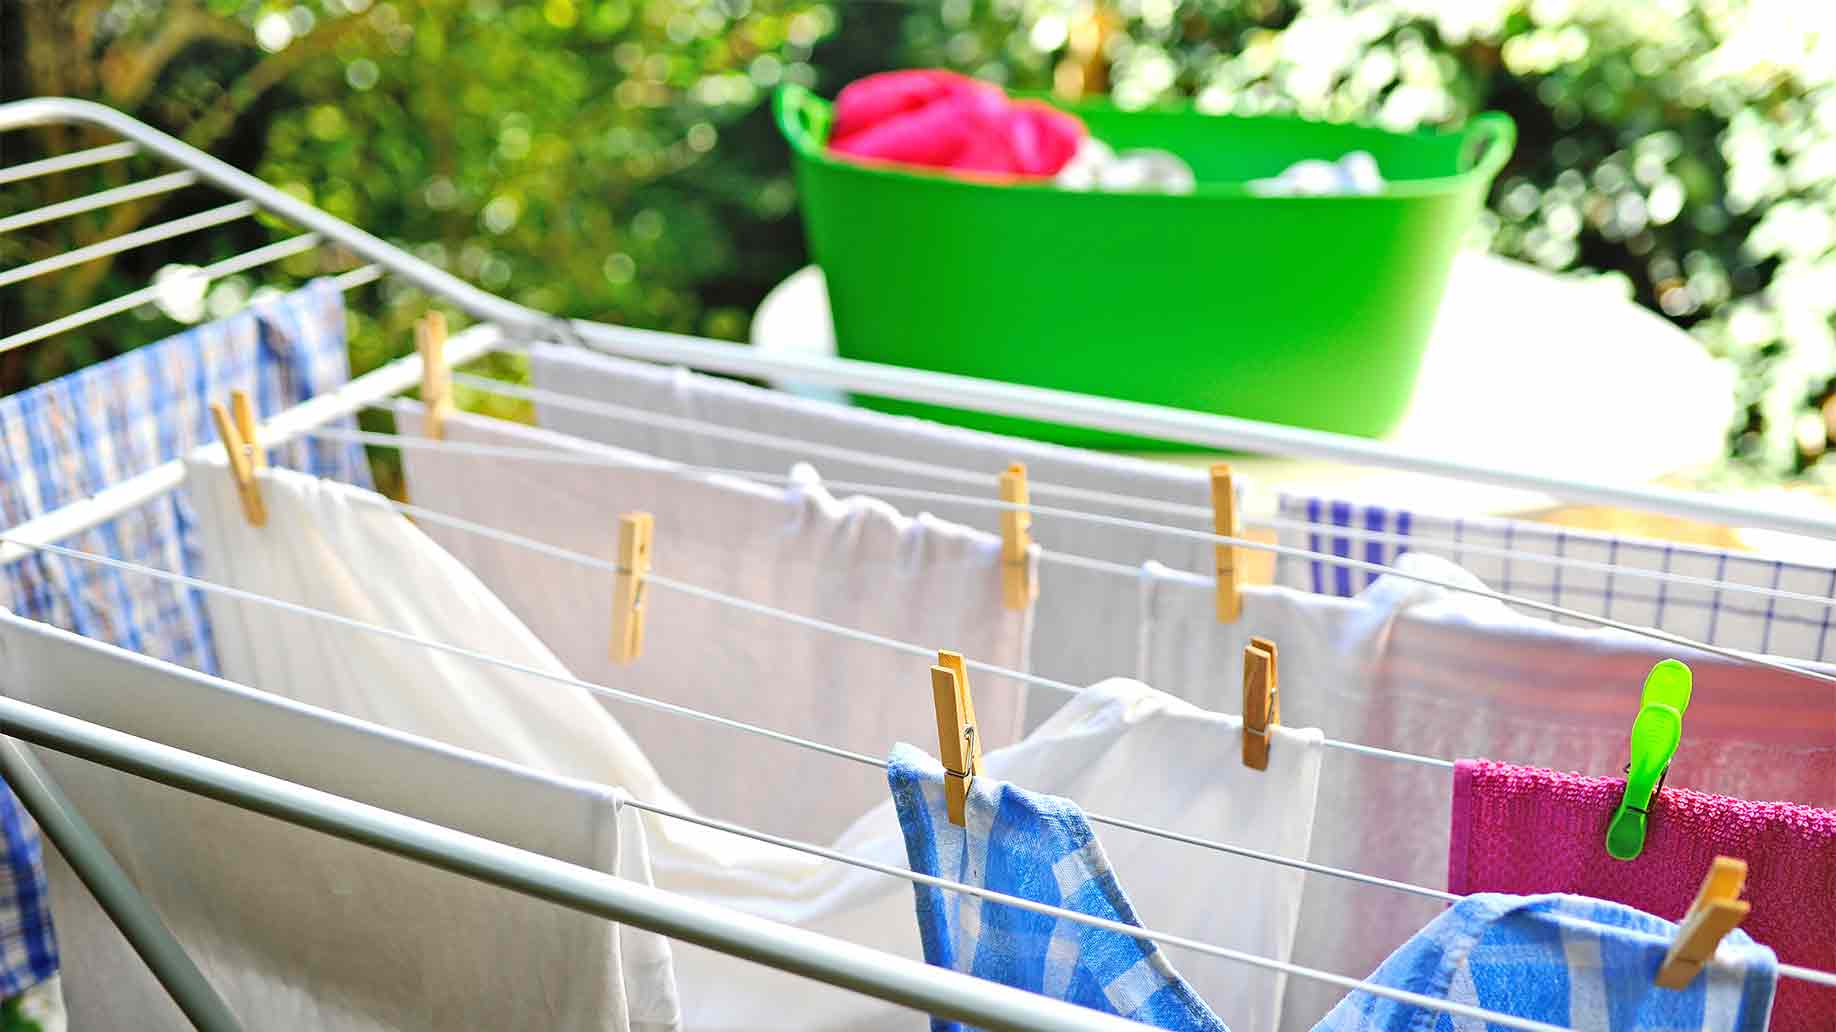 freshly washed clothes drying outdoor